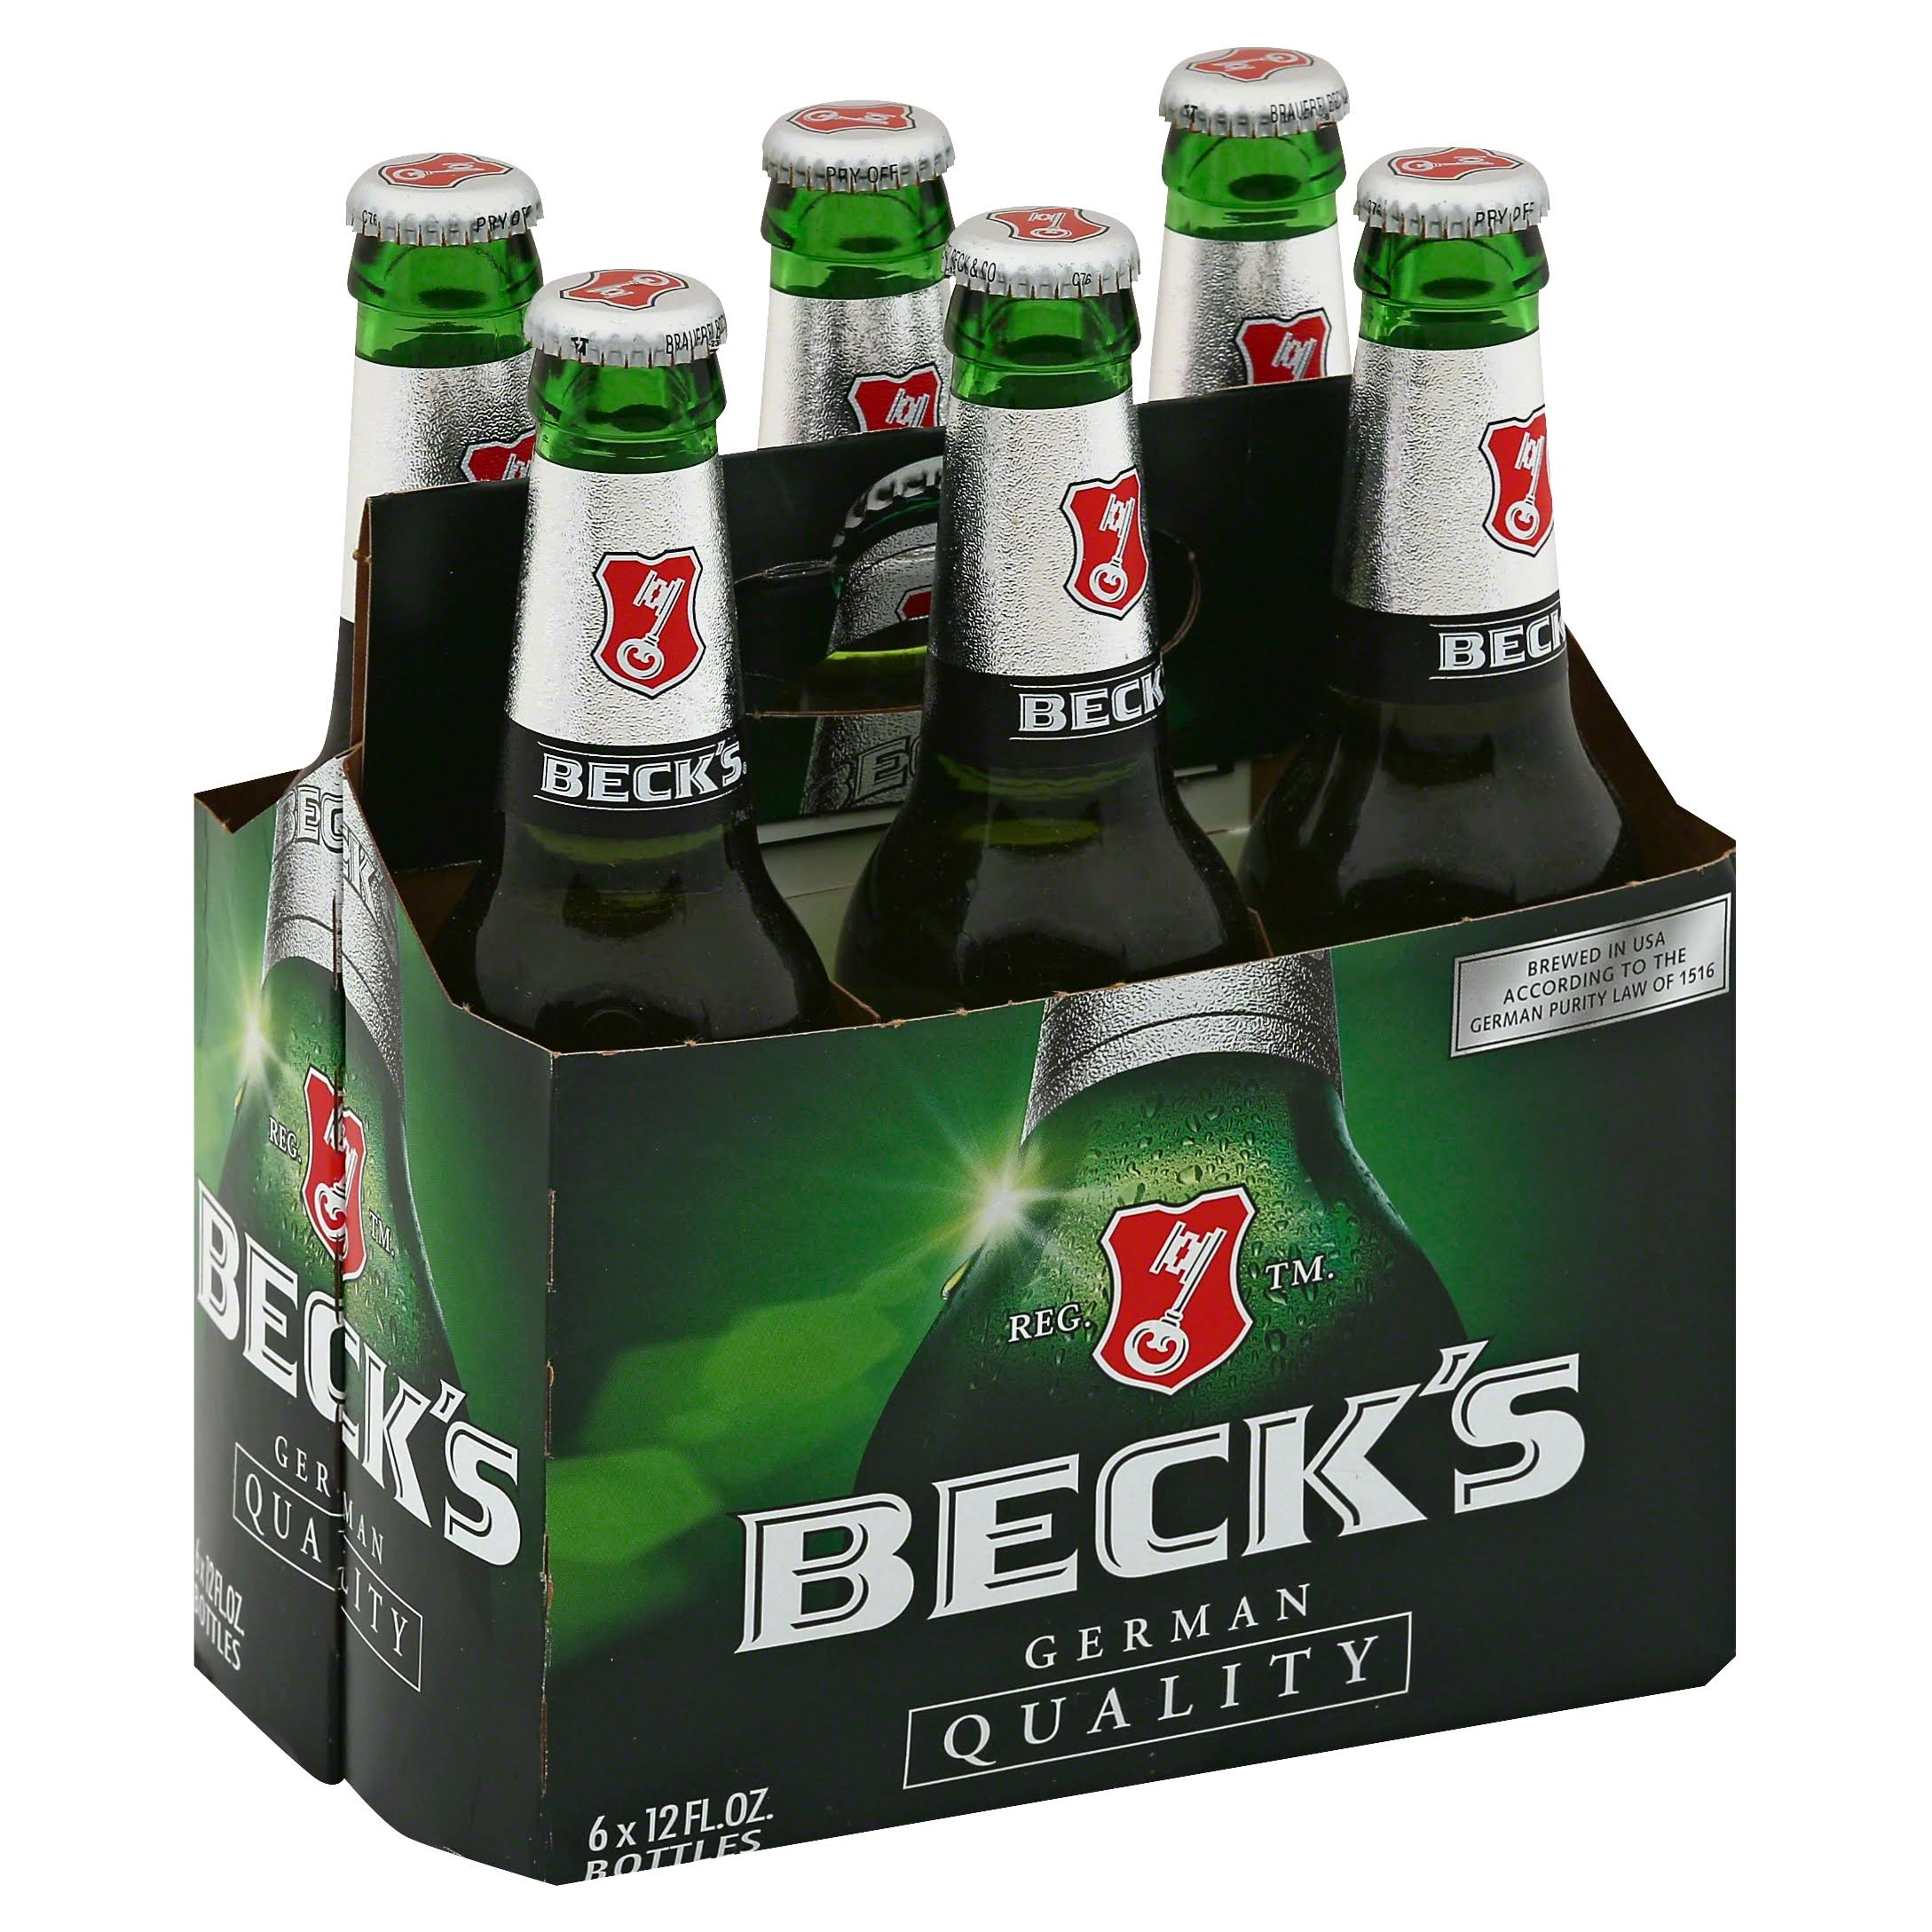 Beck's Beer - 6 Bottles